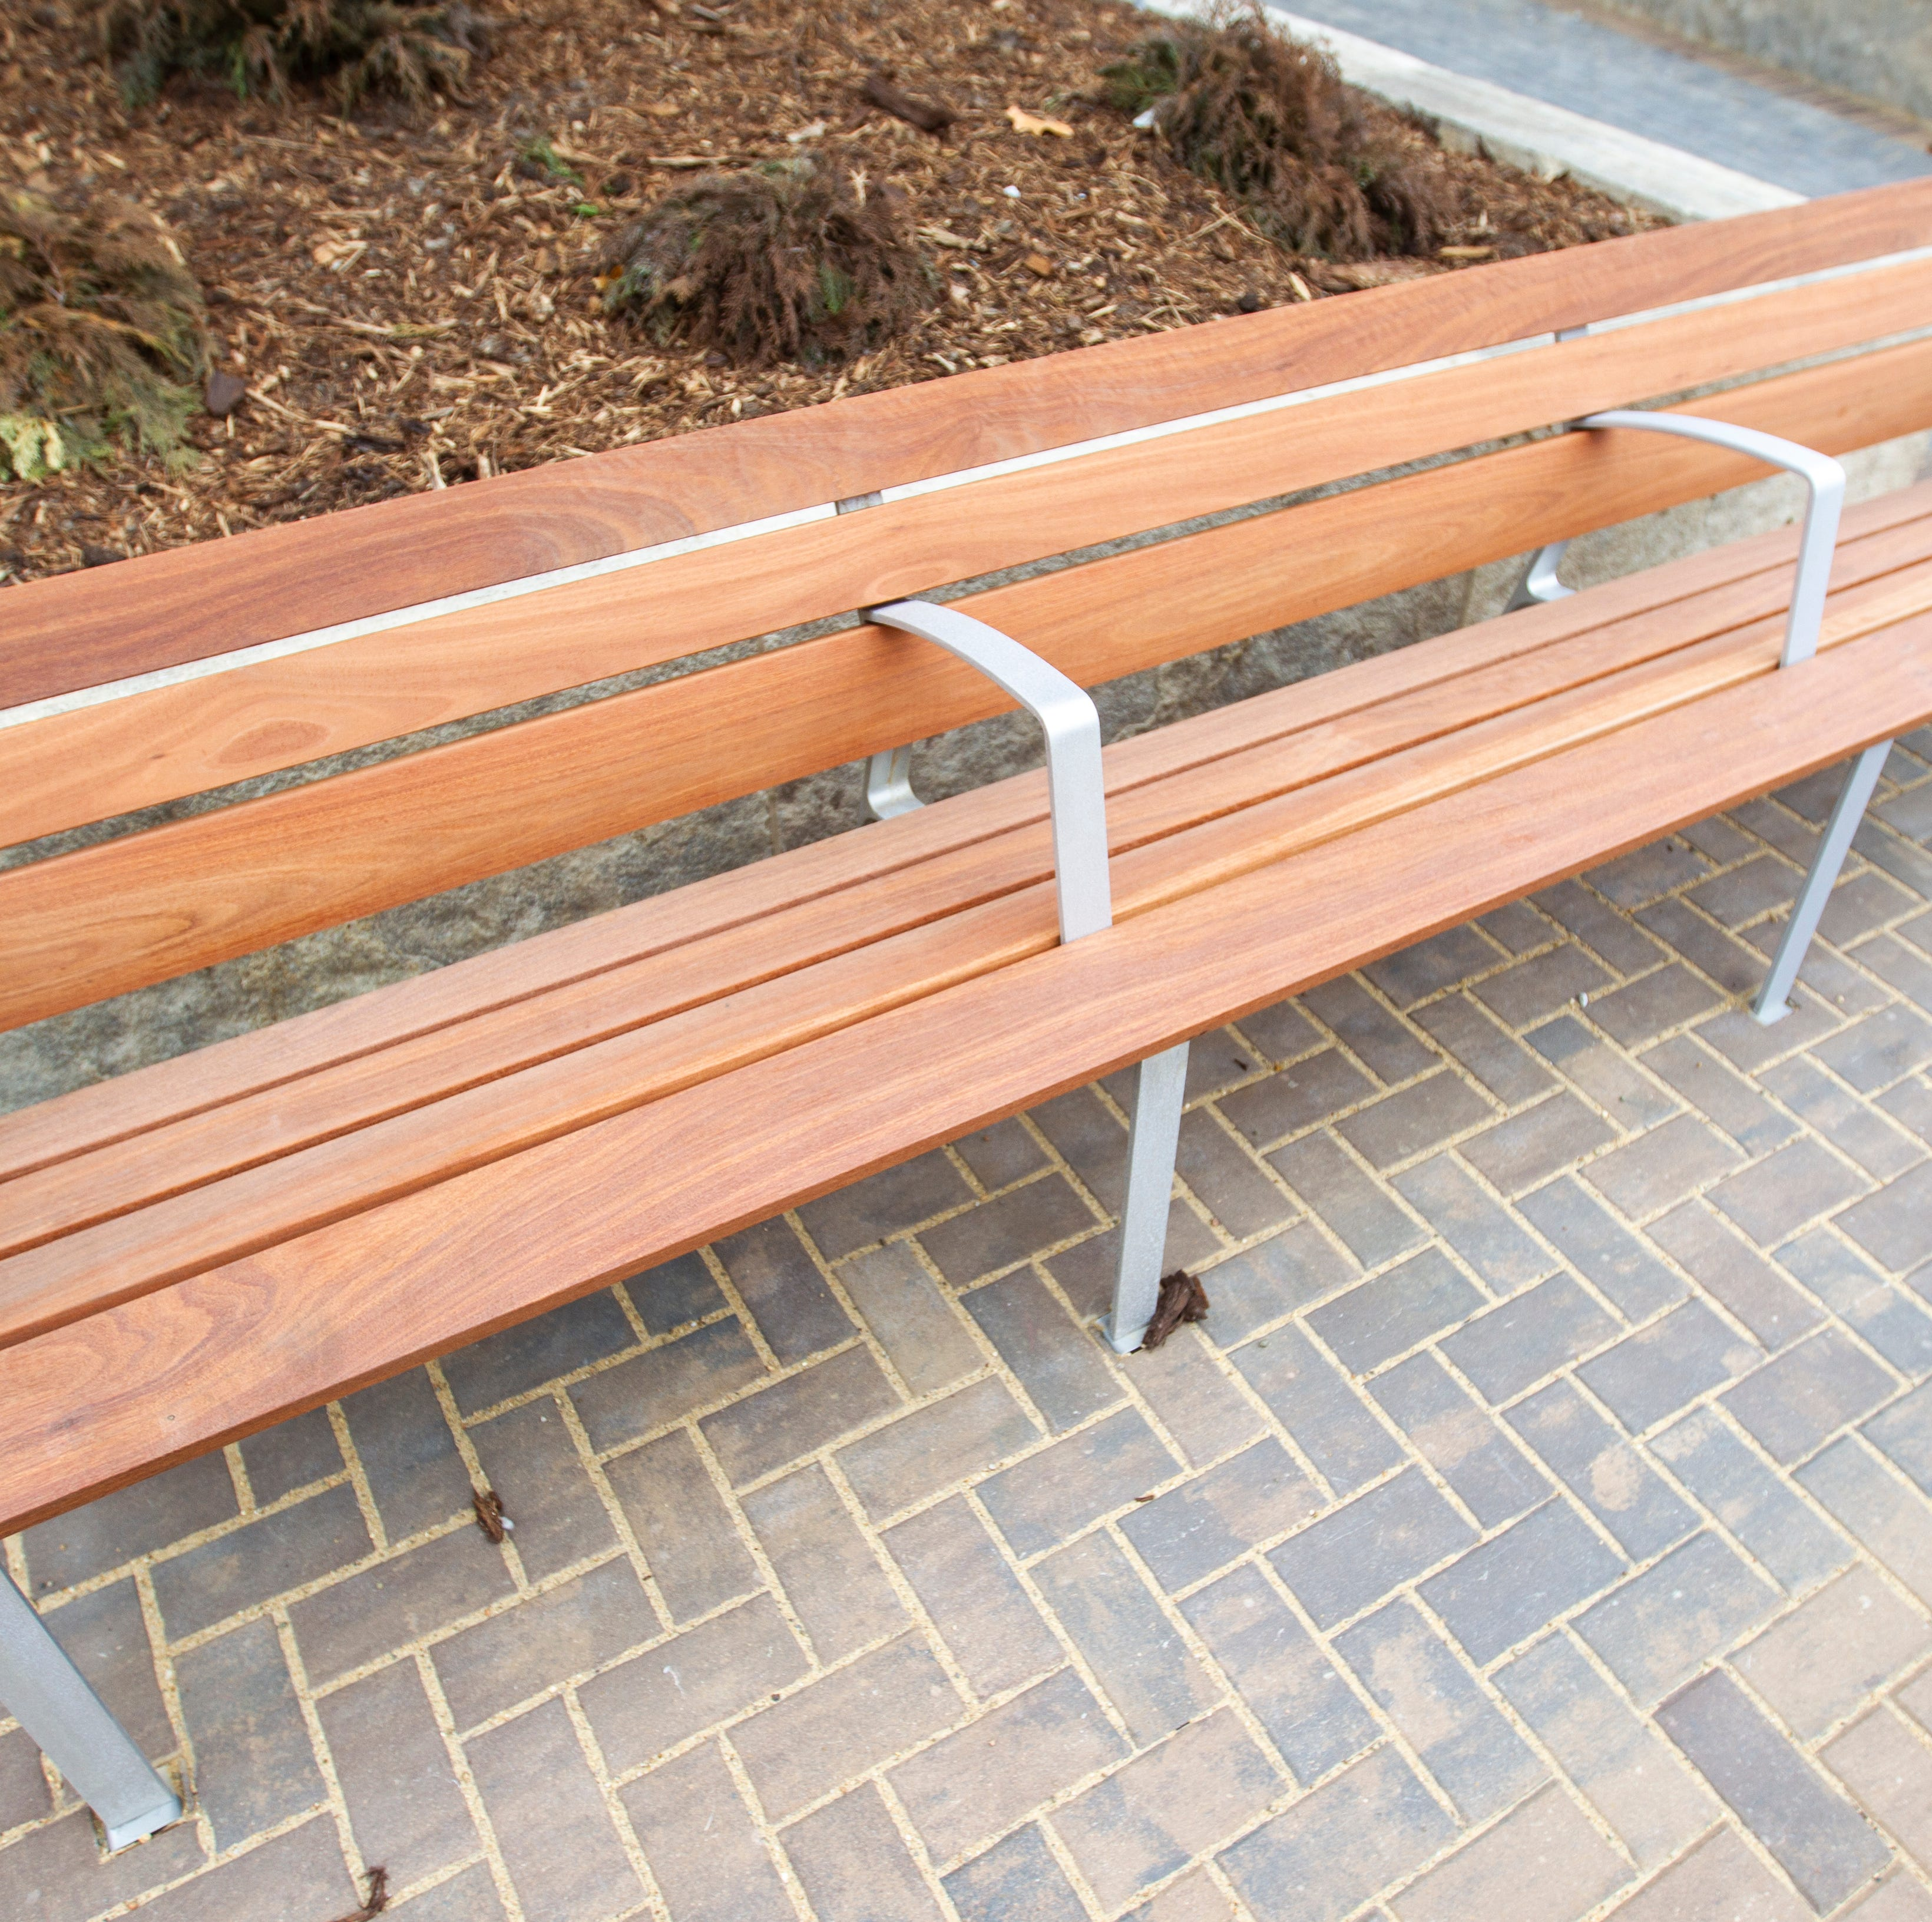 Price tag for replacing all ped mall benches is $150,000